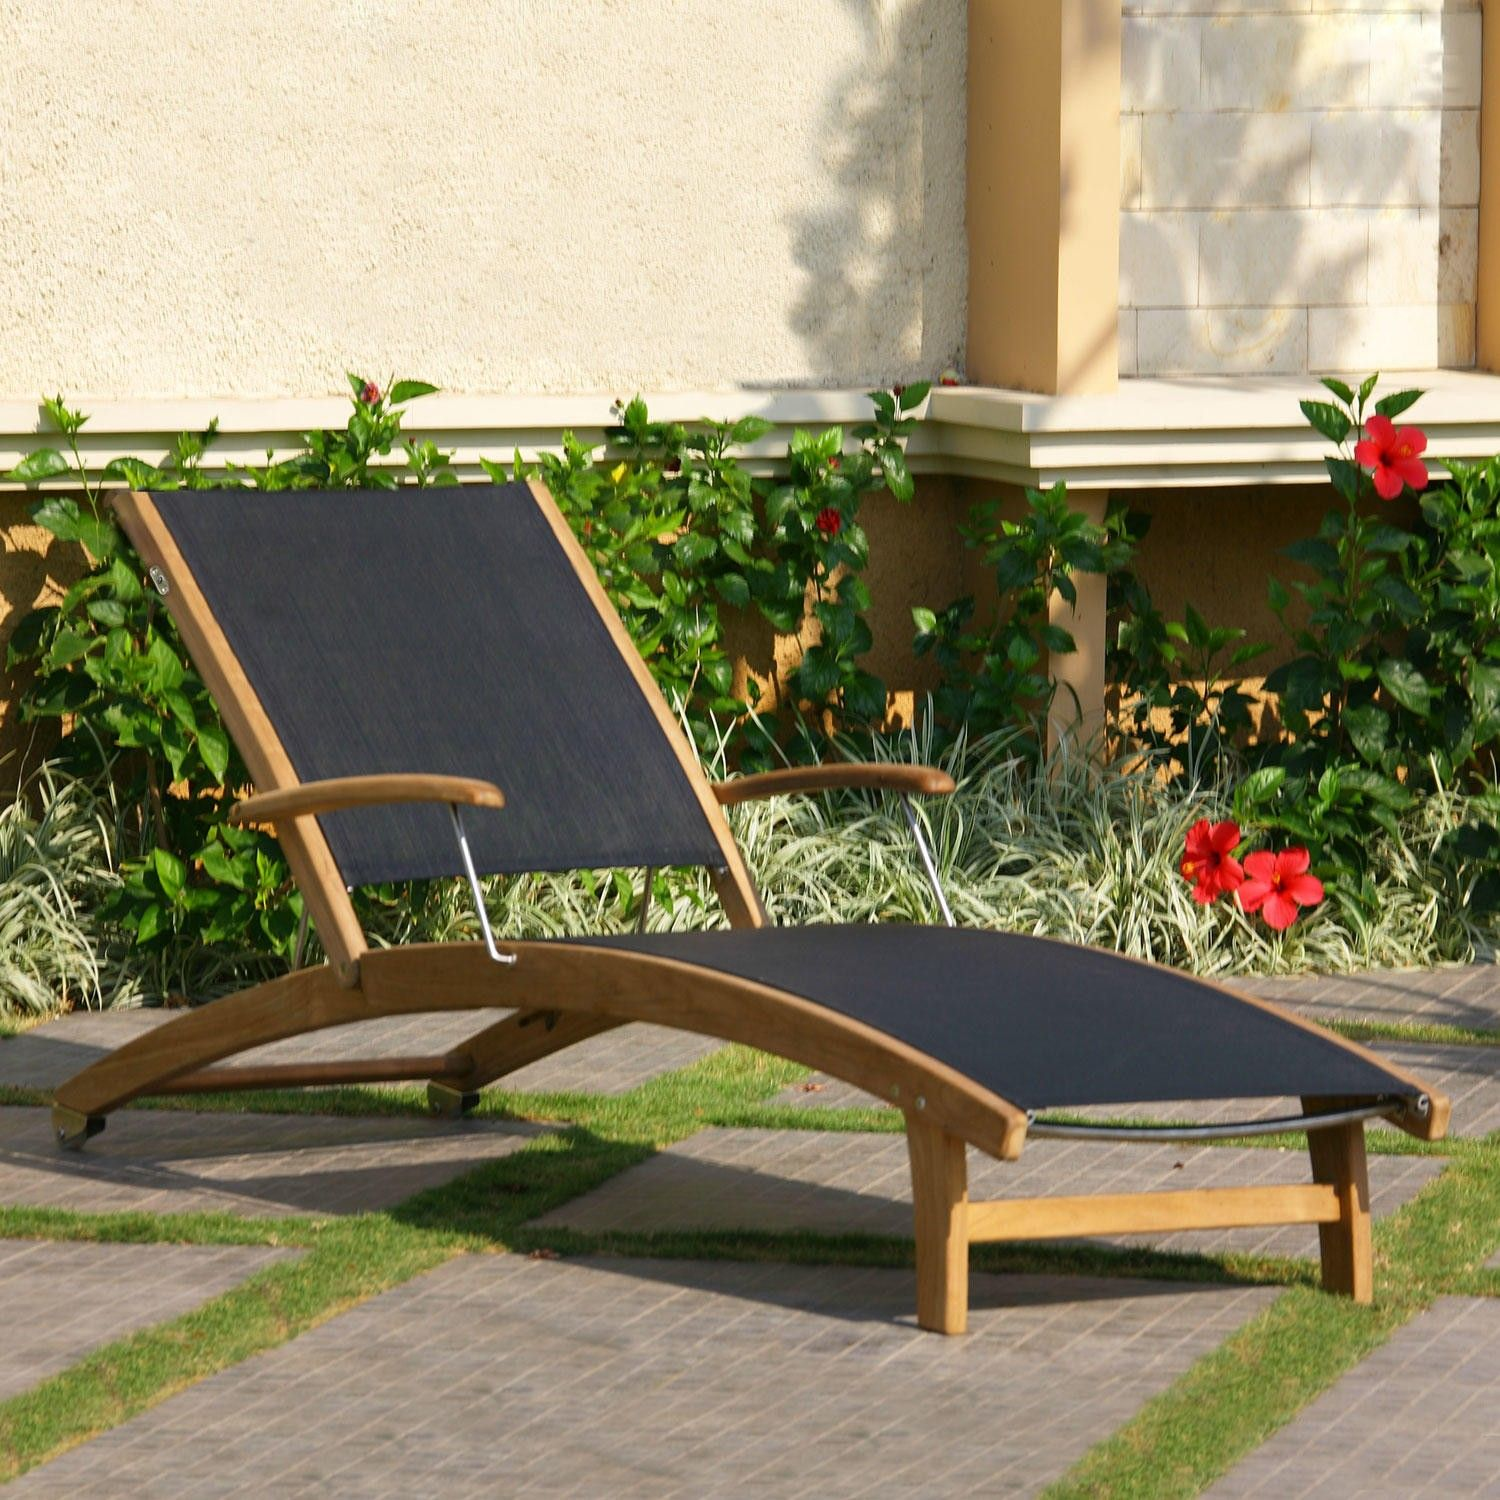 Teak Chaise Lounge Chairs Rivera Teak Sling Lounge Chair Outdoor Chaise Lounges Outdoor